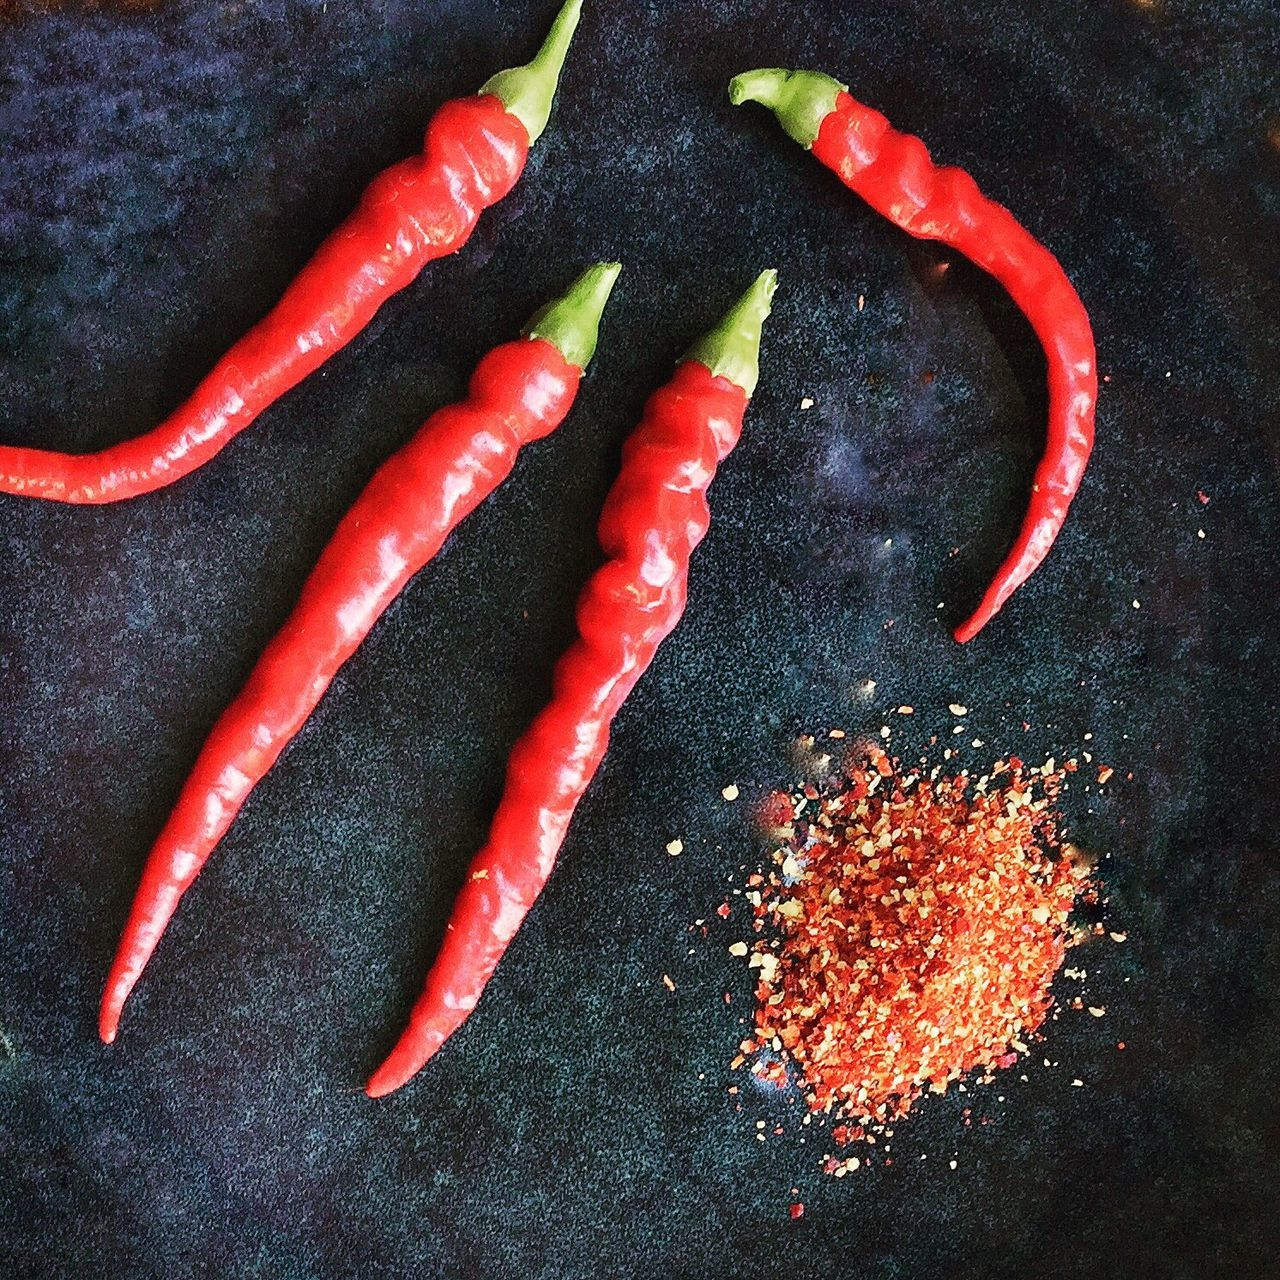 High Angle View Of Red Chili Peppers And Paprika On Table